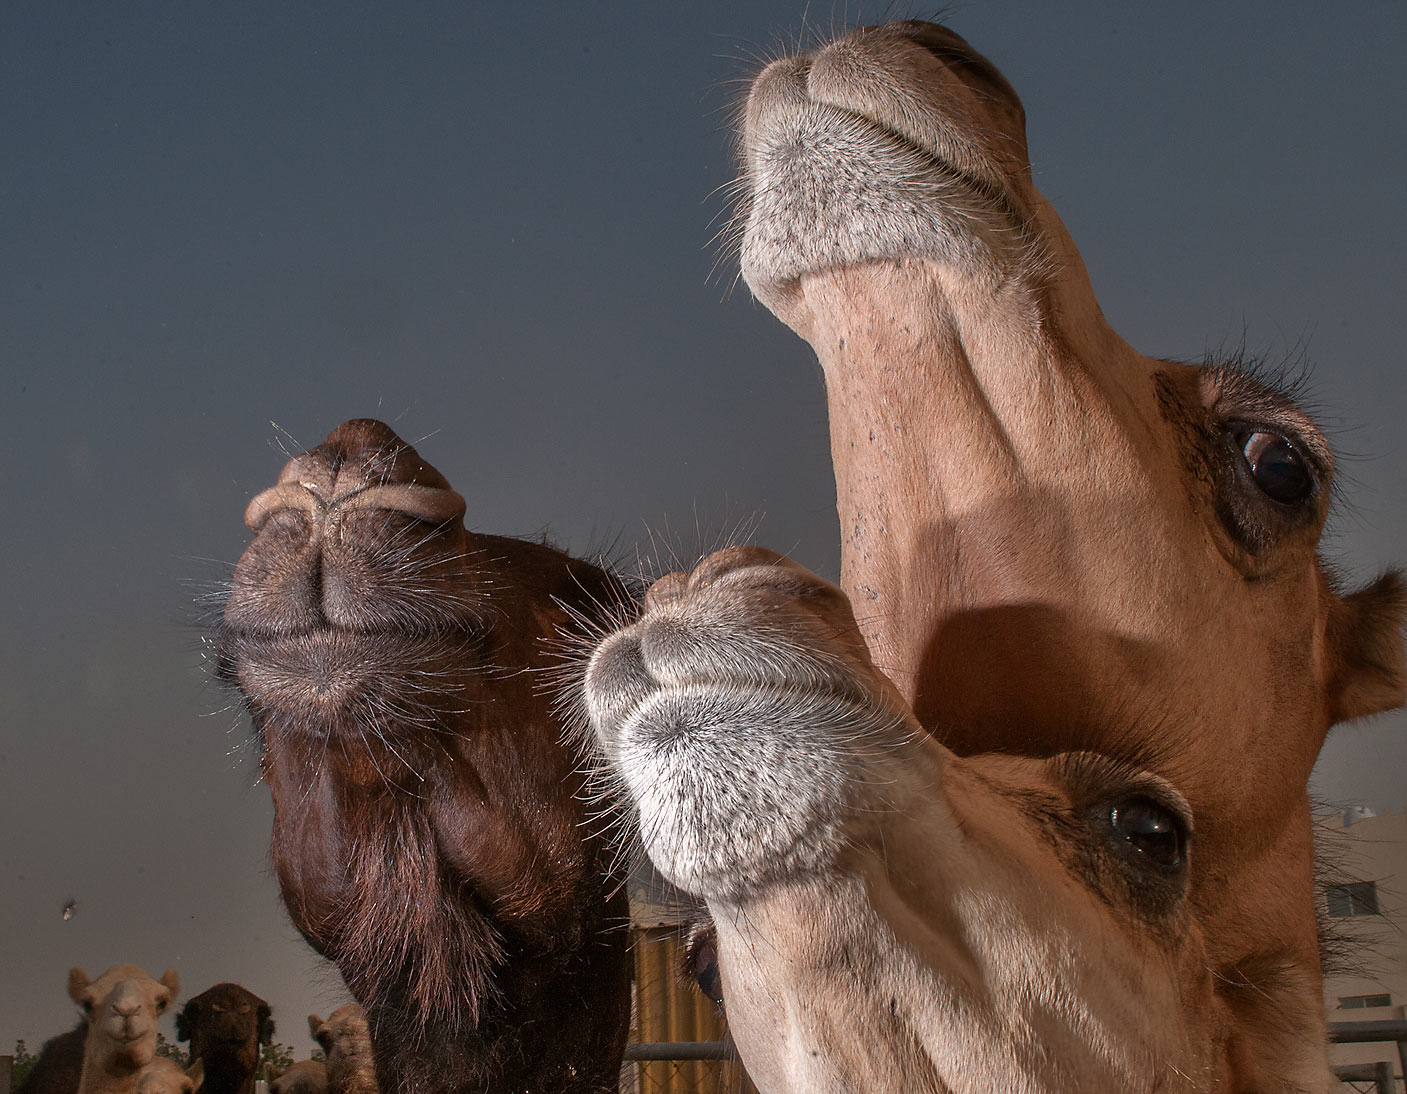 Politically correct' portrait of three camels in...Wholesale Markets area. Doha, Qatar